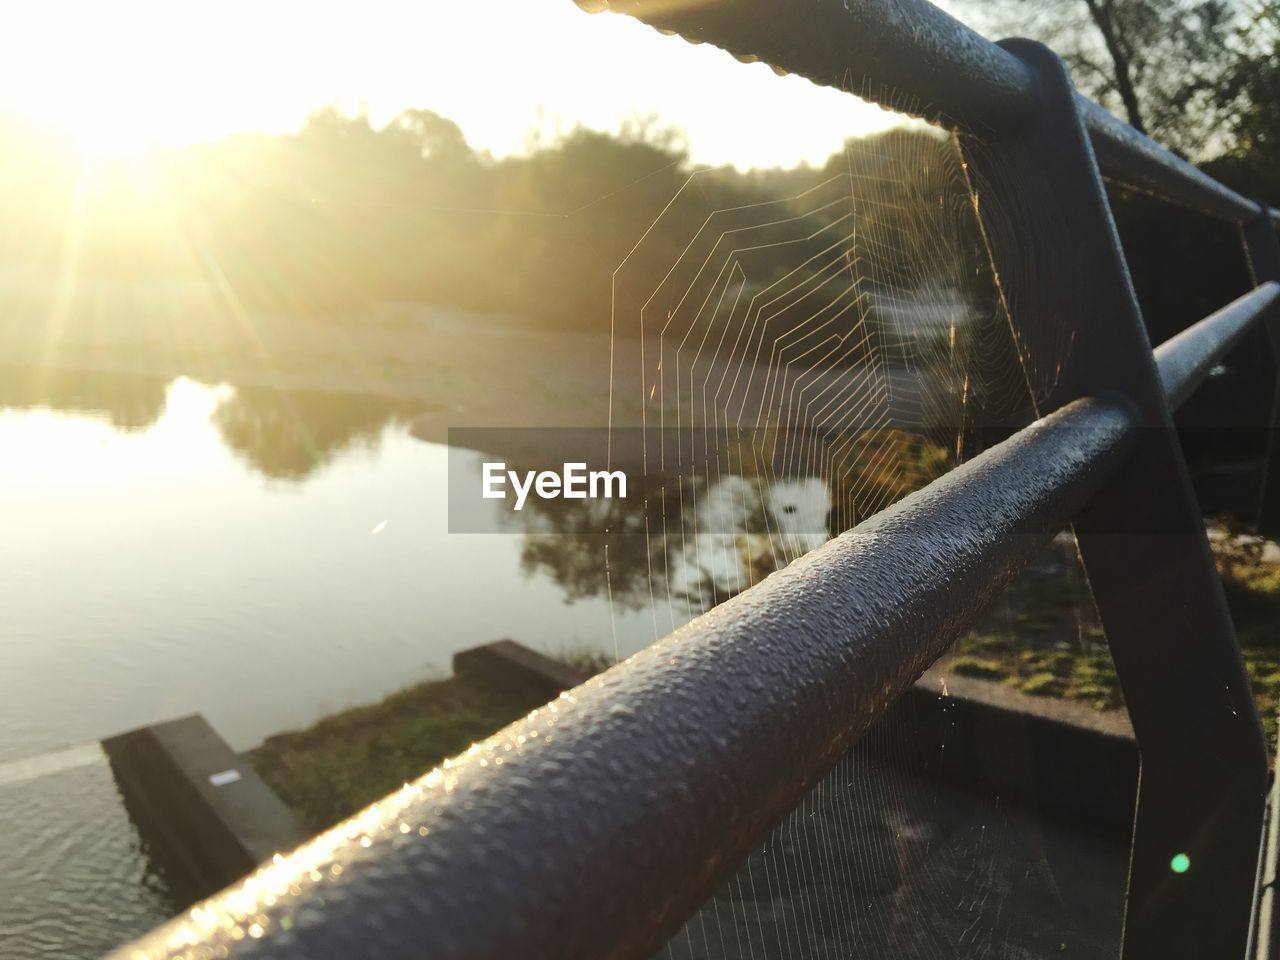 sunlight, nature, no people, day, close-up, water, outdoors, focus on foreground, animal, one animal, spider web, animal themes, metal, reflection, lake, railing, animals in the wild, sunbeam, beauty in nature